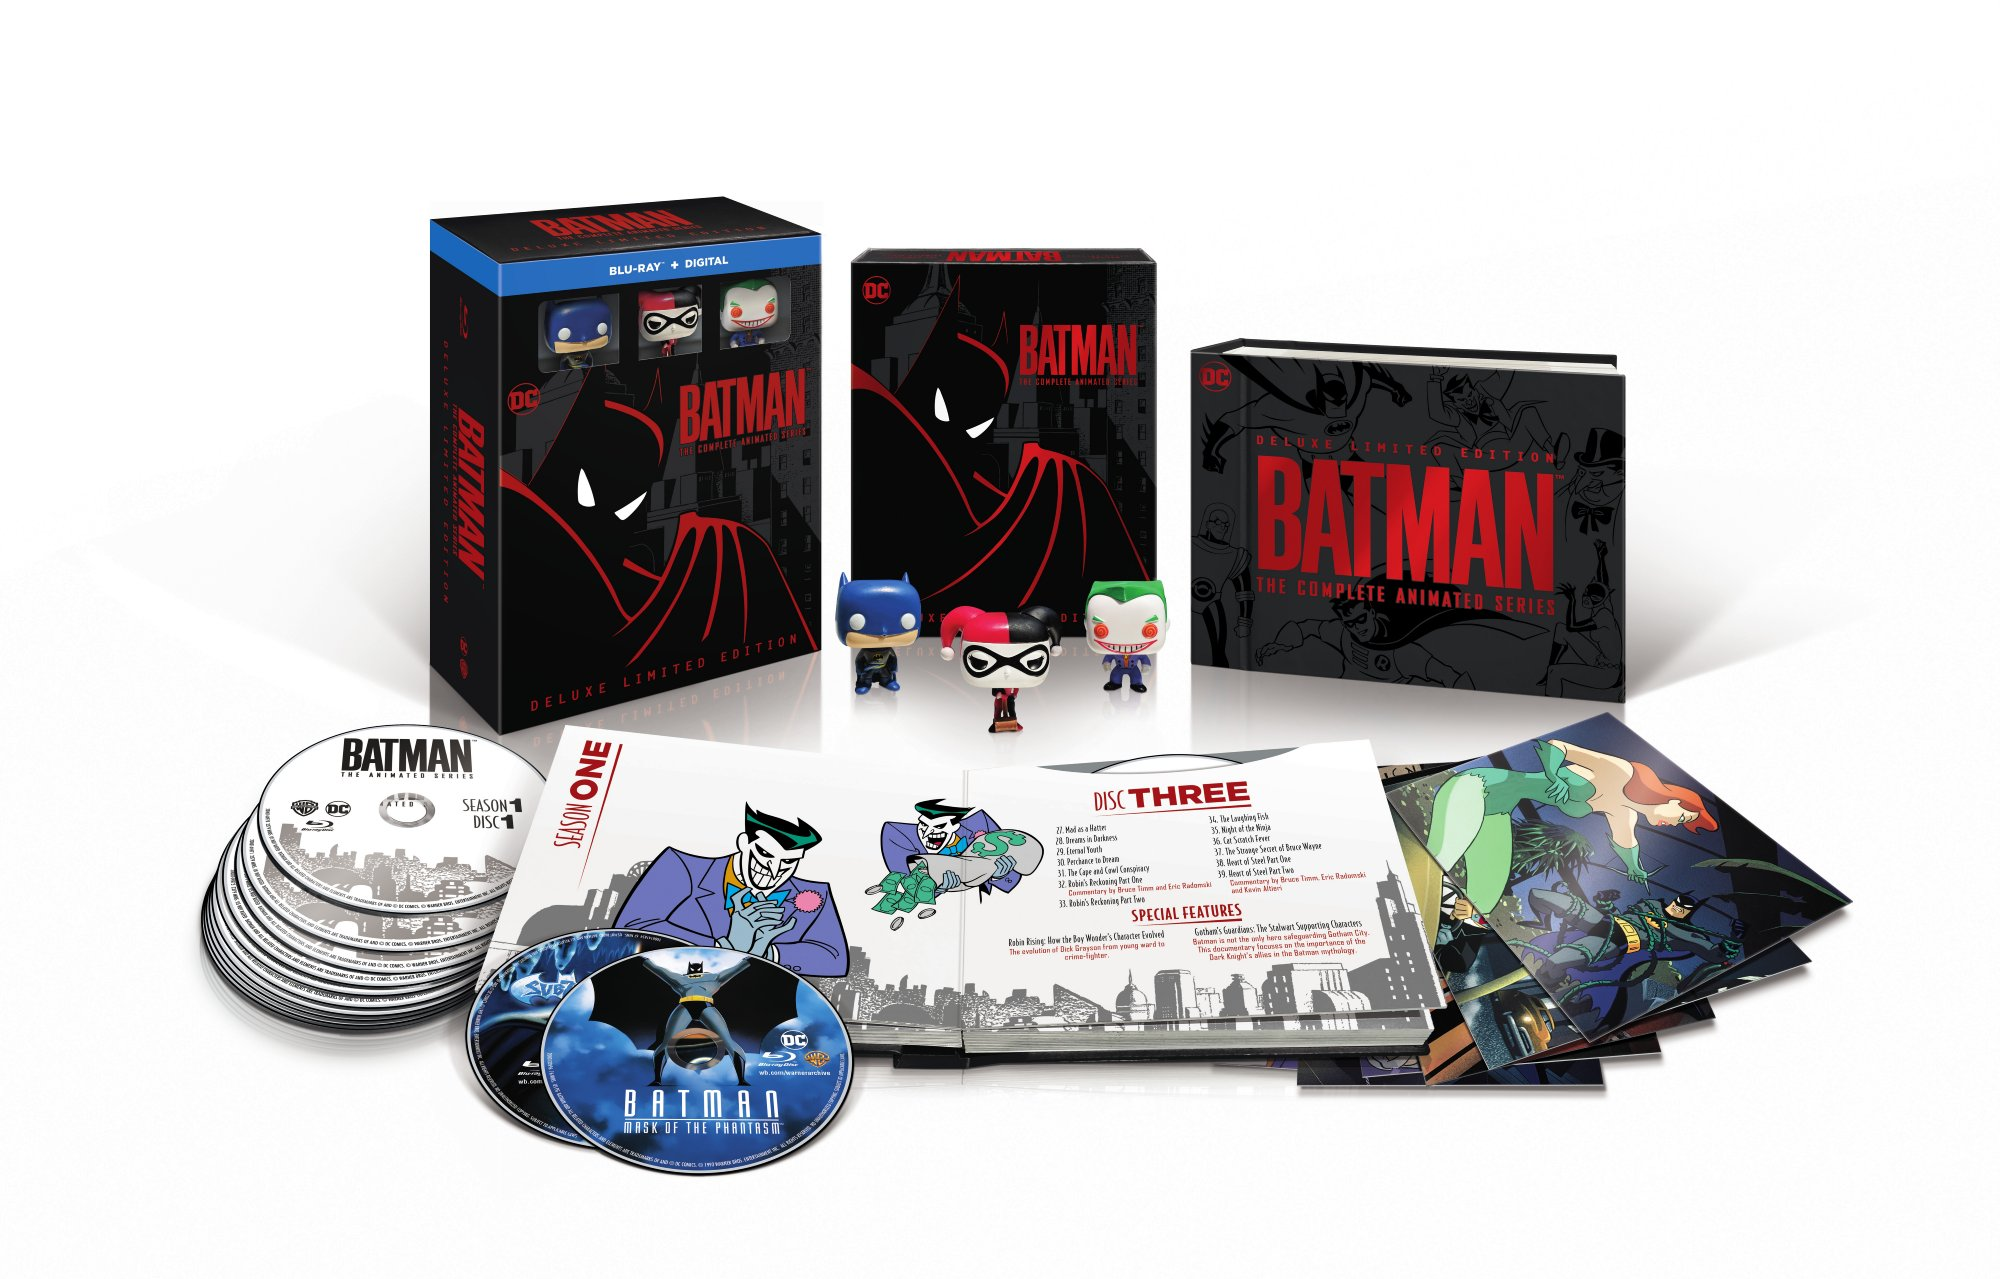 Batman: the Animated Series Blu-ray Beauty Shot